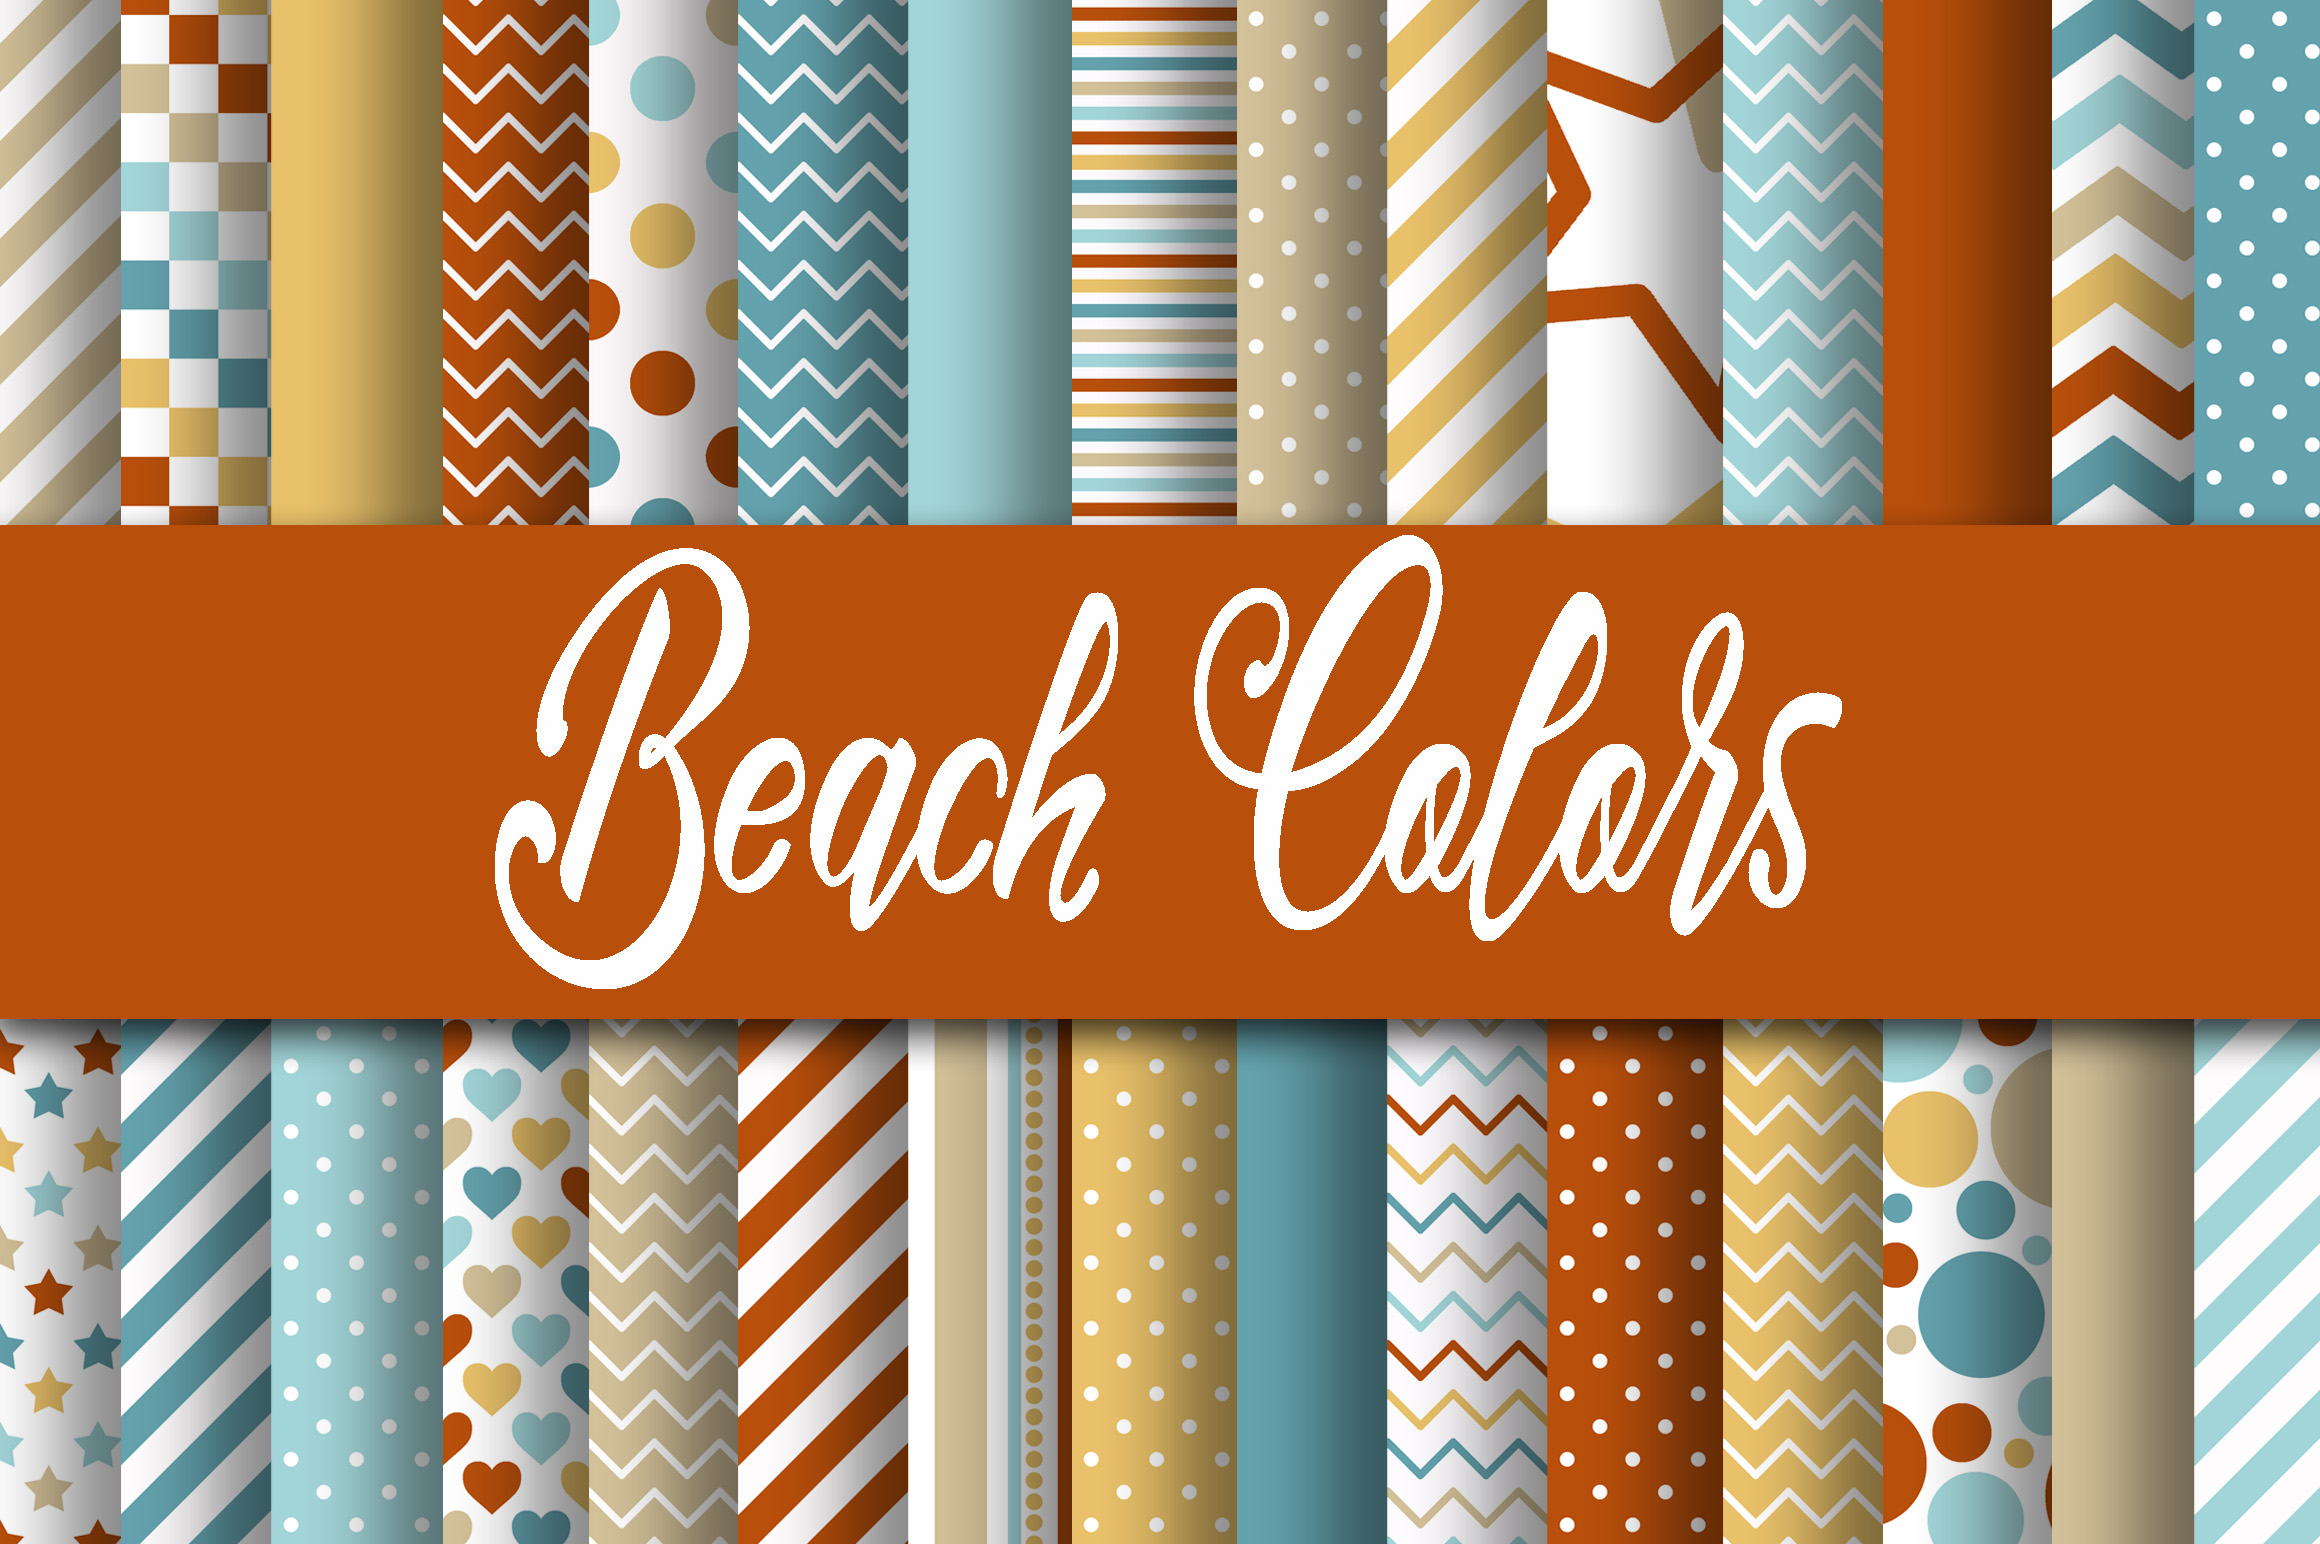 Beach Colors Digital Paper Graphic By oldmarketdesigns